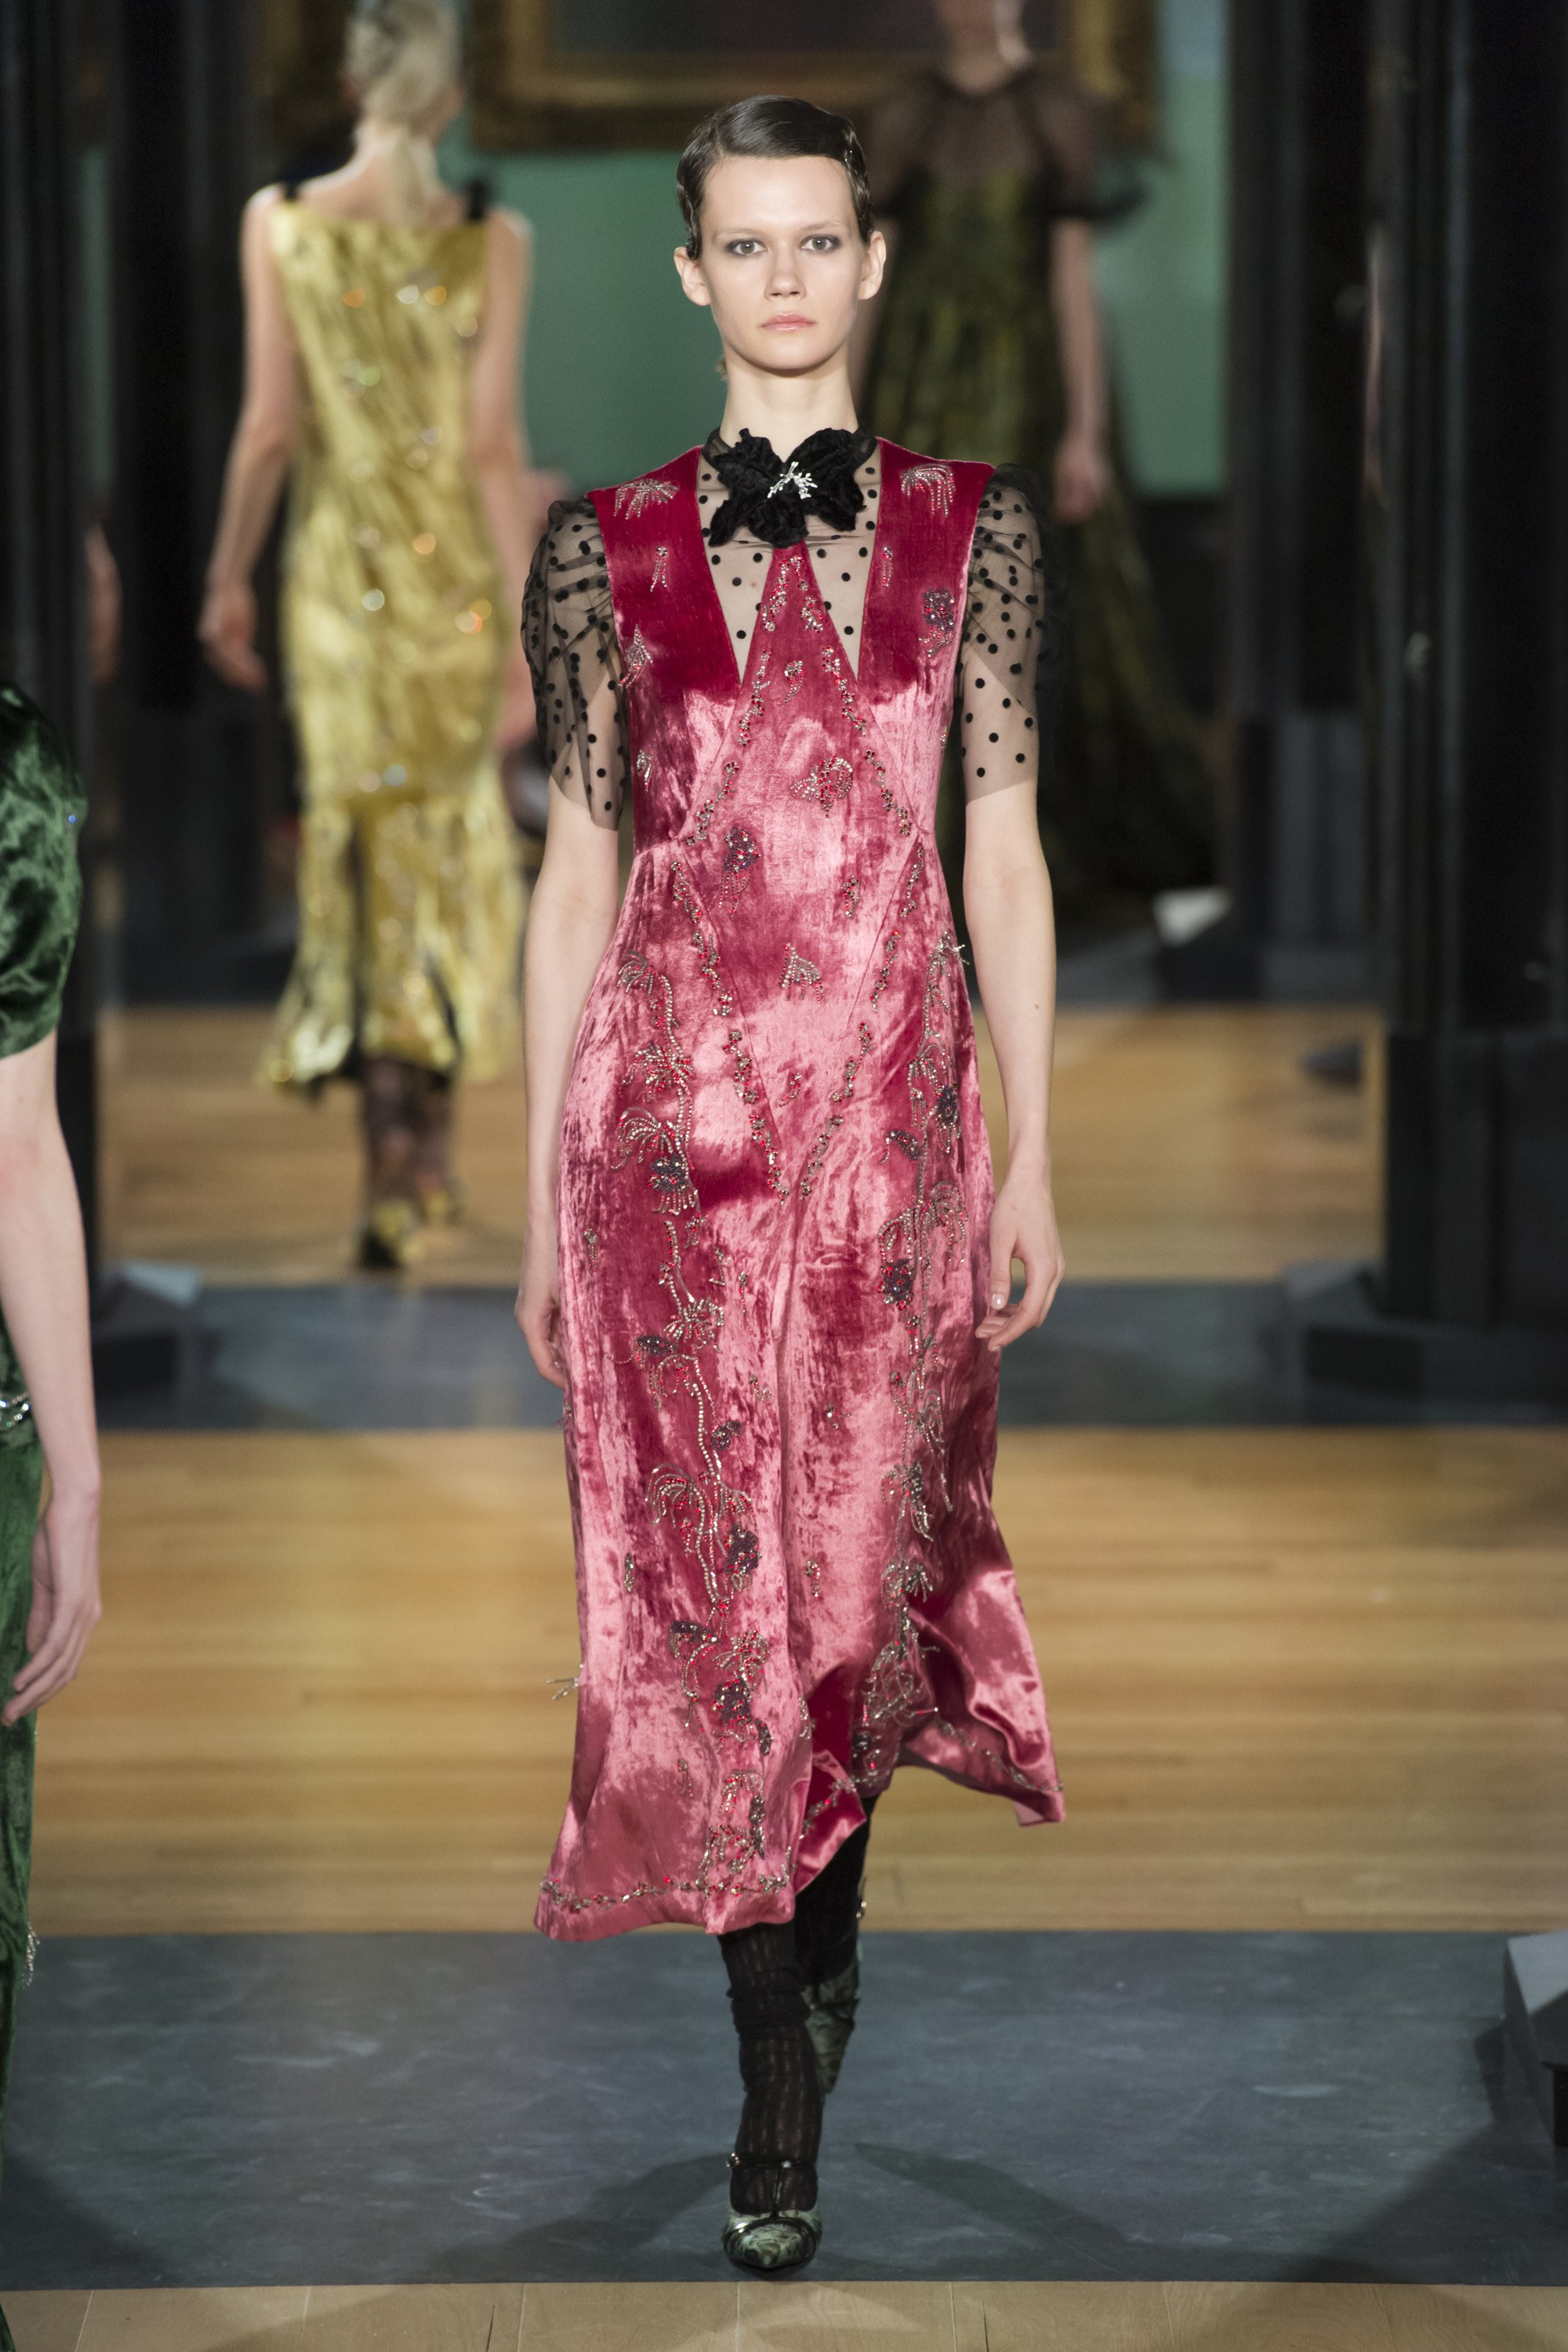 erdem-london-fashion-week-fall-2018-rtw-11.jpg